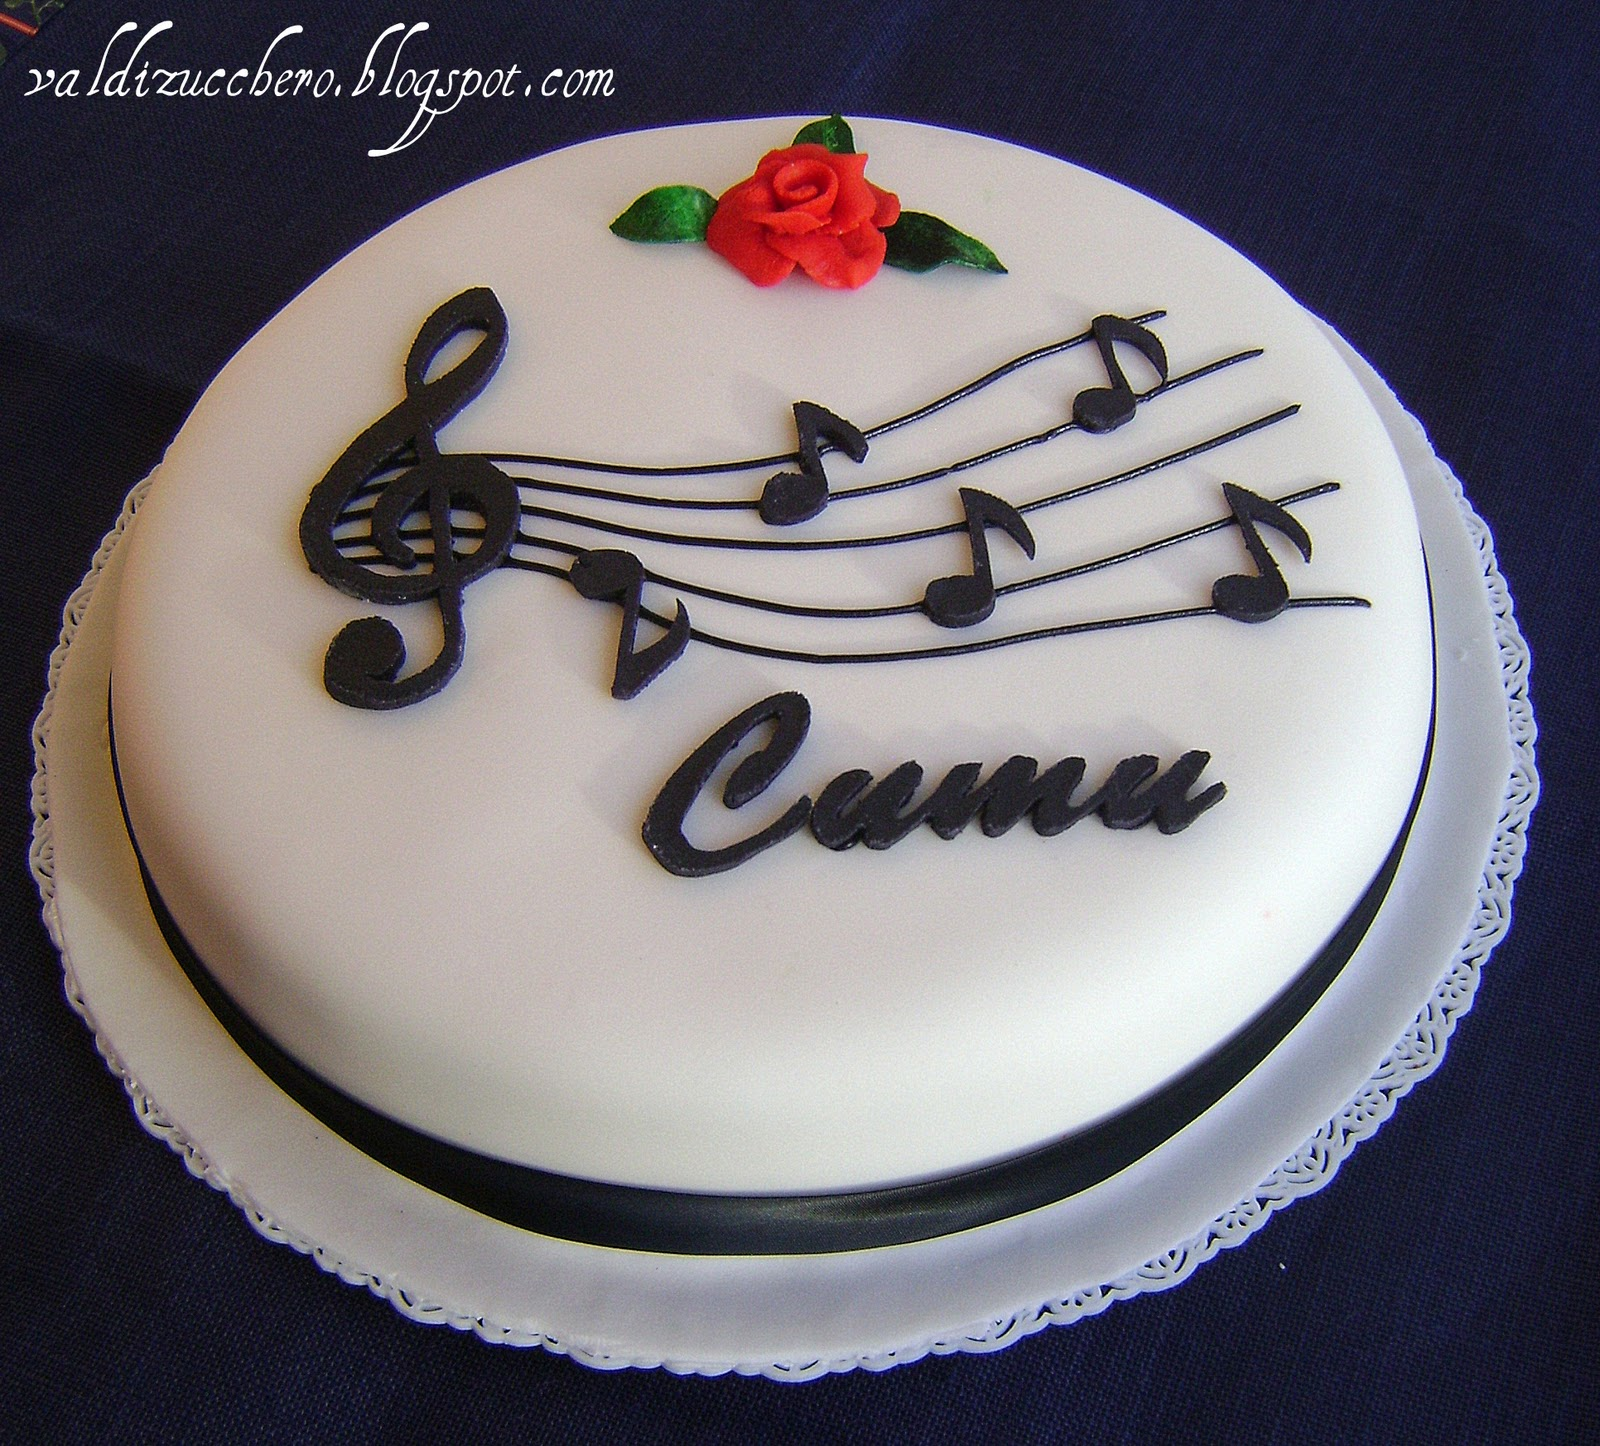 Birthday Cake Pictures With Song : Val di zucchero: Music cake